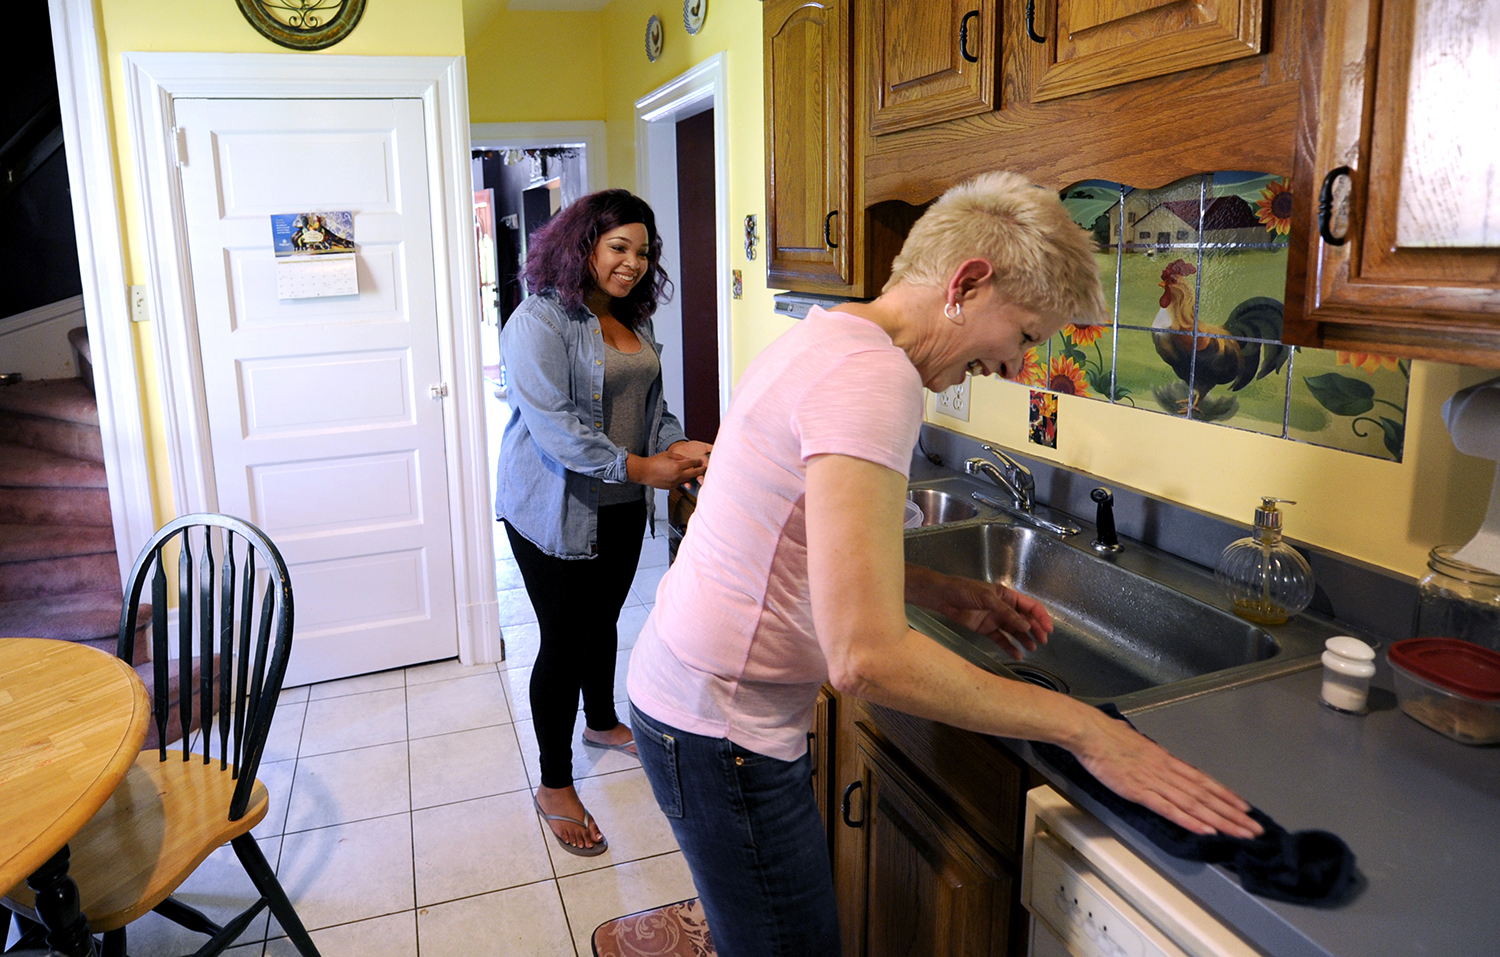 Tristan Haggerty and her adoptive mother, Kimberly Mavilla, chat and clean up the kitchen in the Bellevue house that has become a permanent home for the teenager. (Photo by Connor Mulvaney/PublicSource)